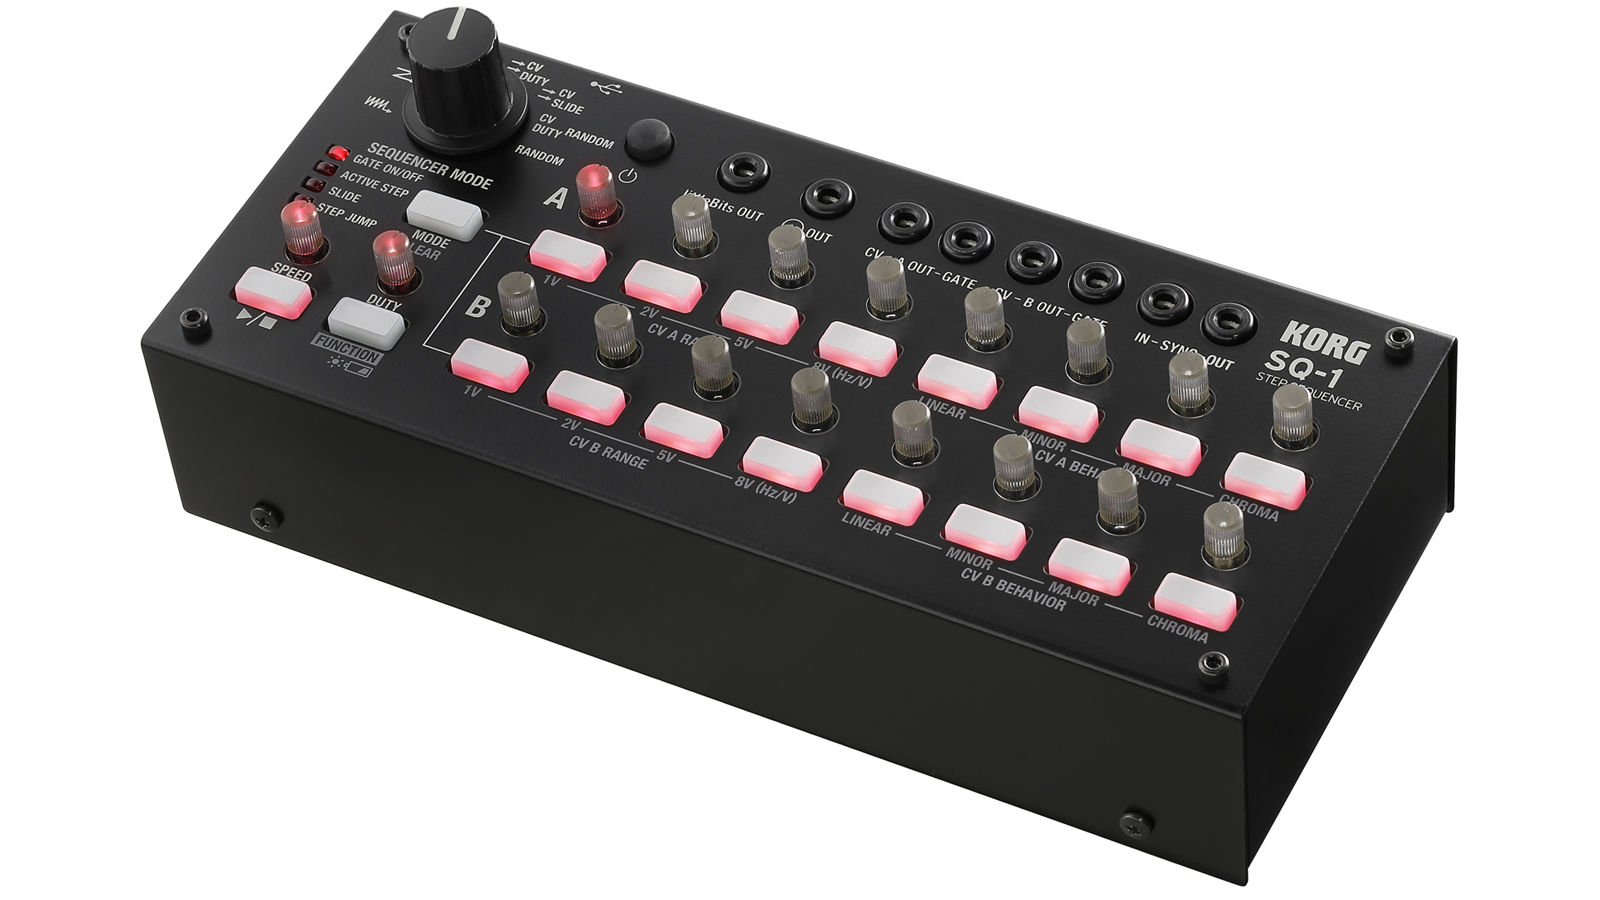 Korg SQ-1 2x8 Step Sequencer